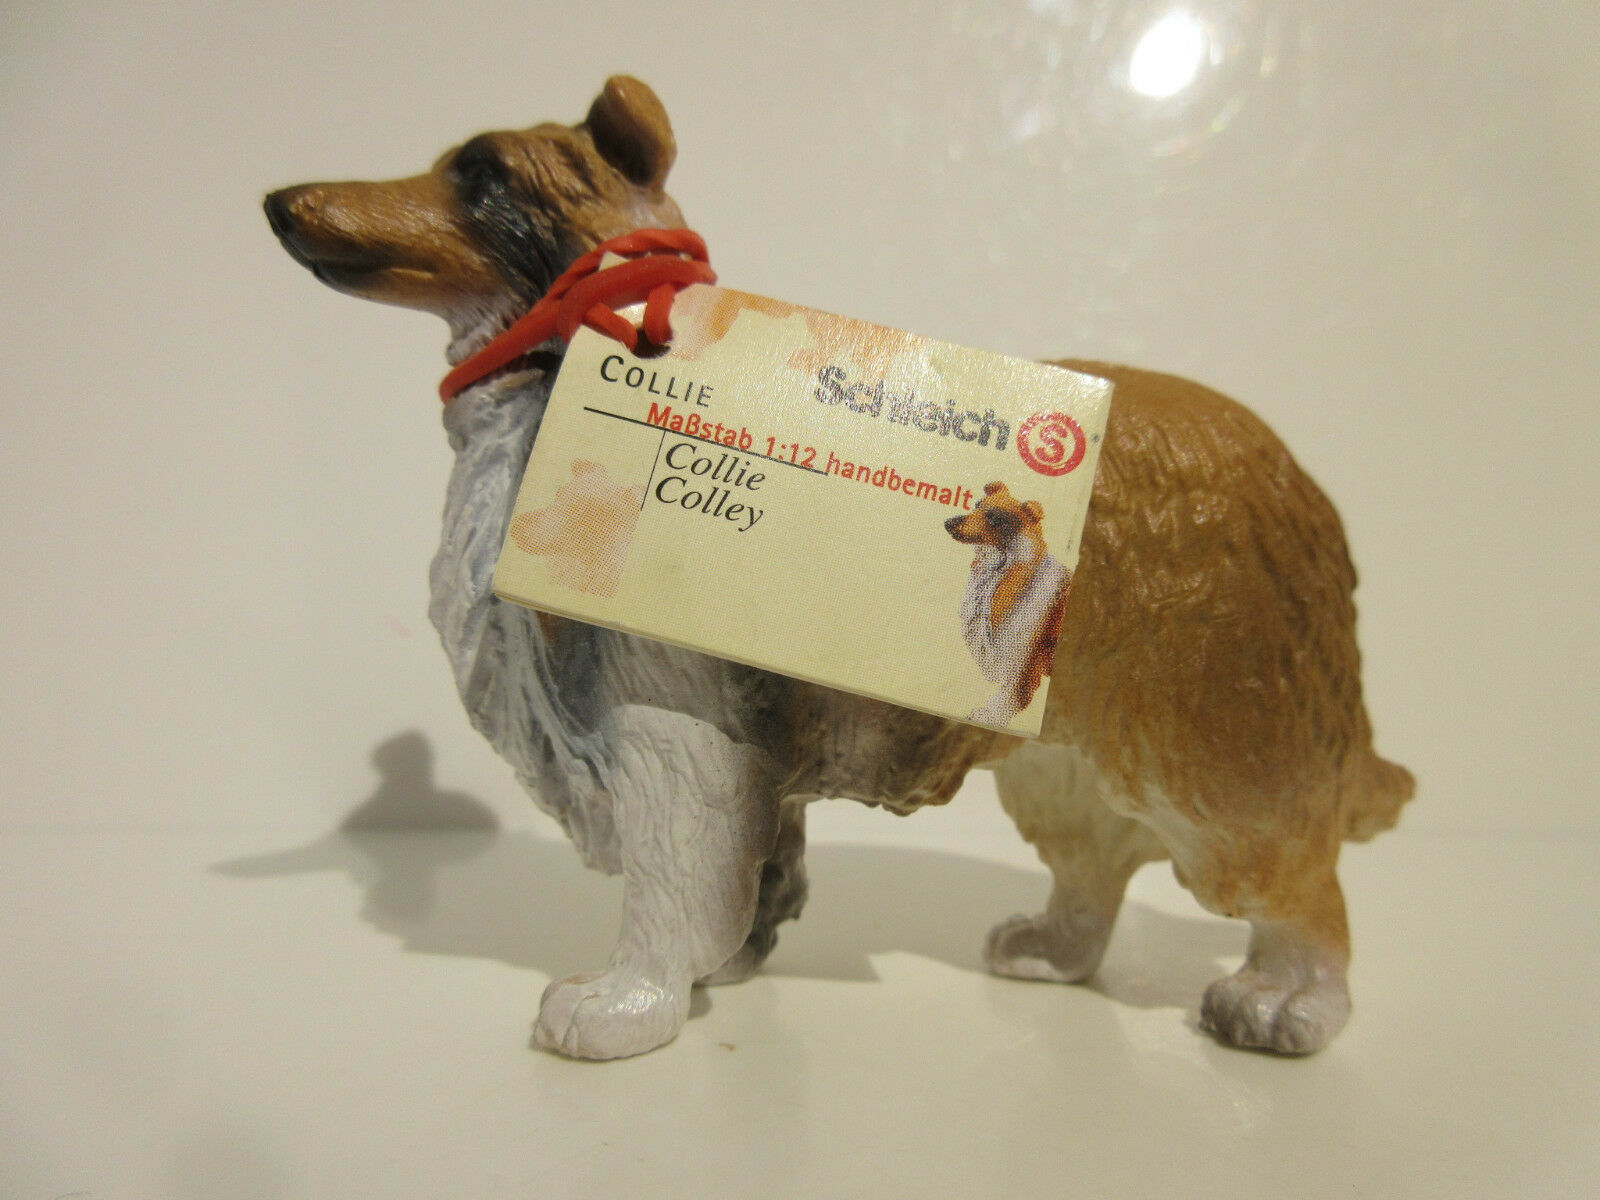 16304 Schleich Dog: Collie booklet MADE IN GERMANY  ref: 21P46